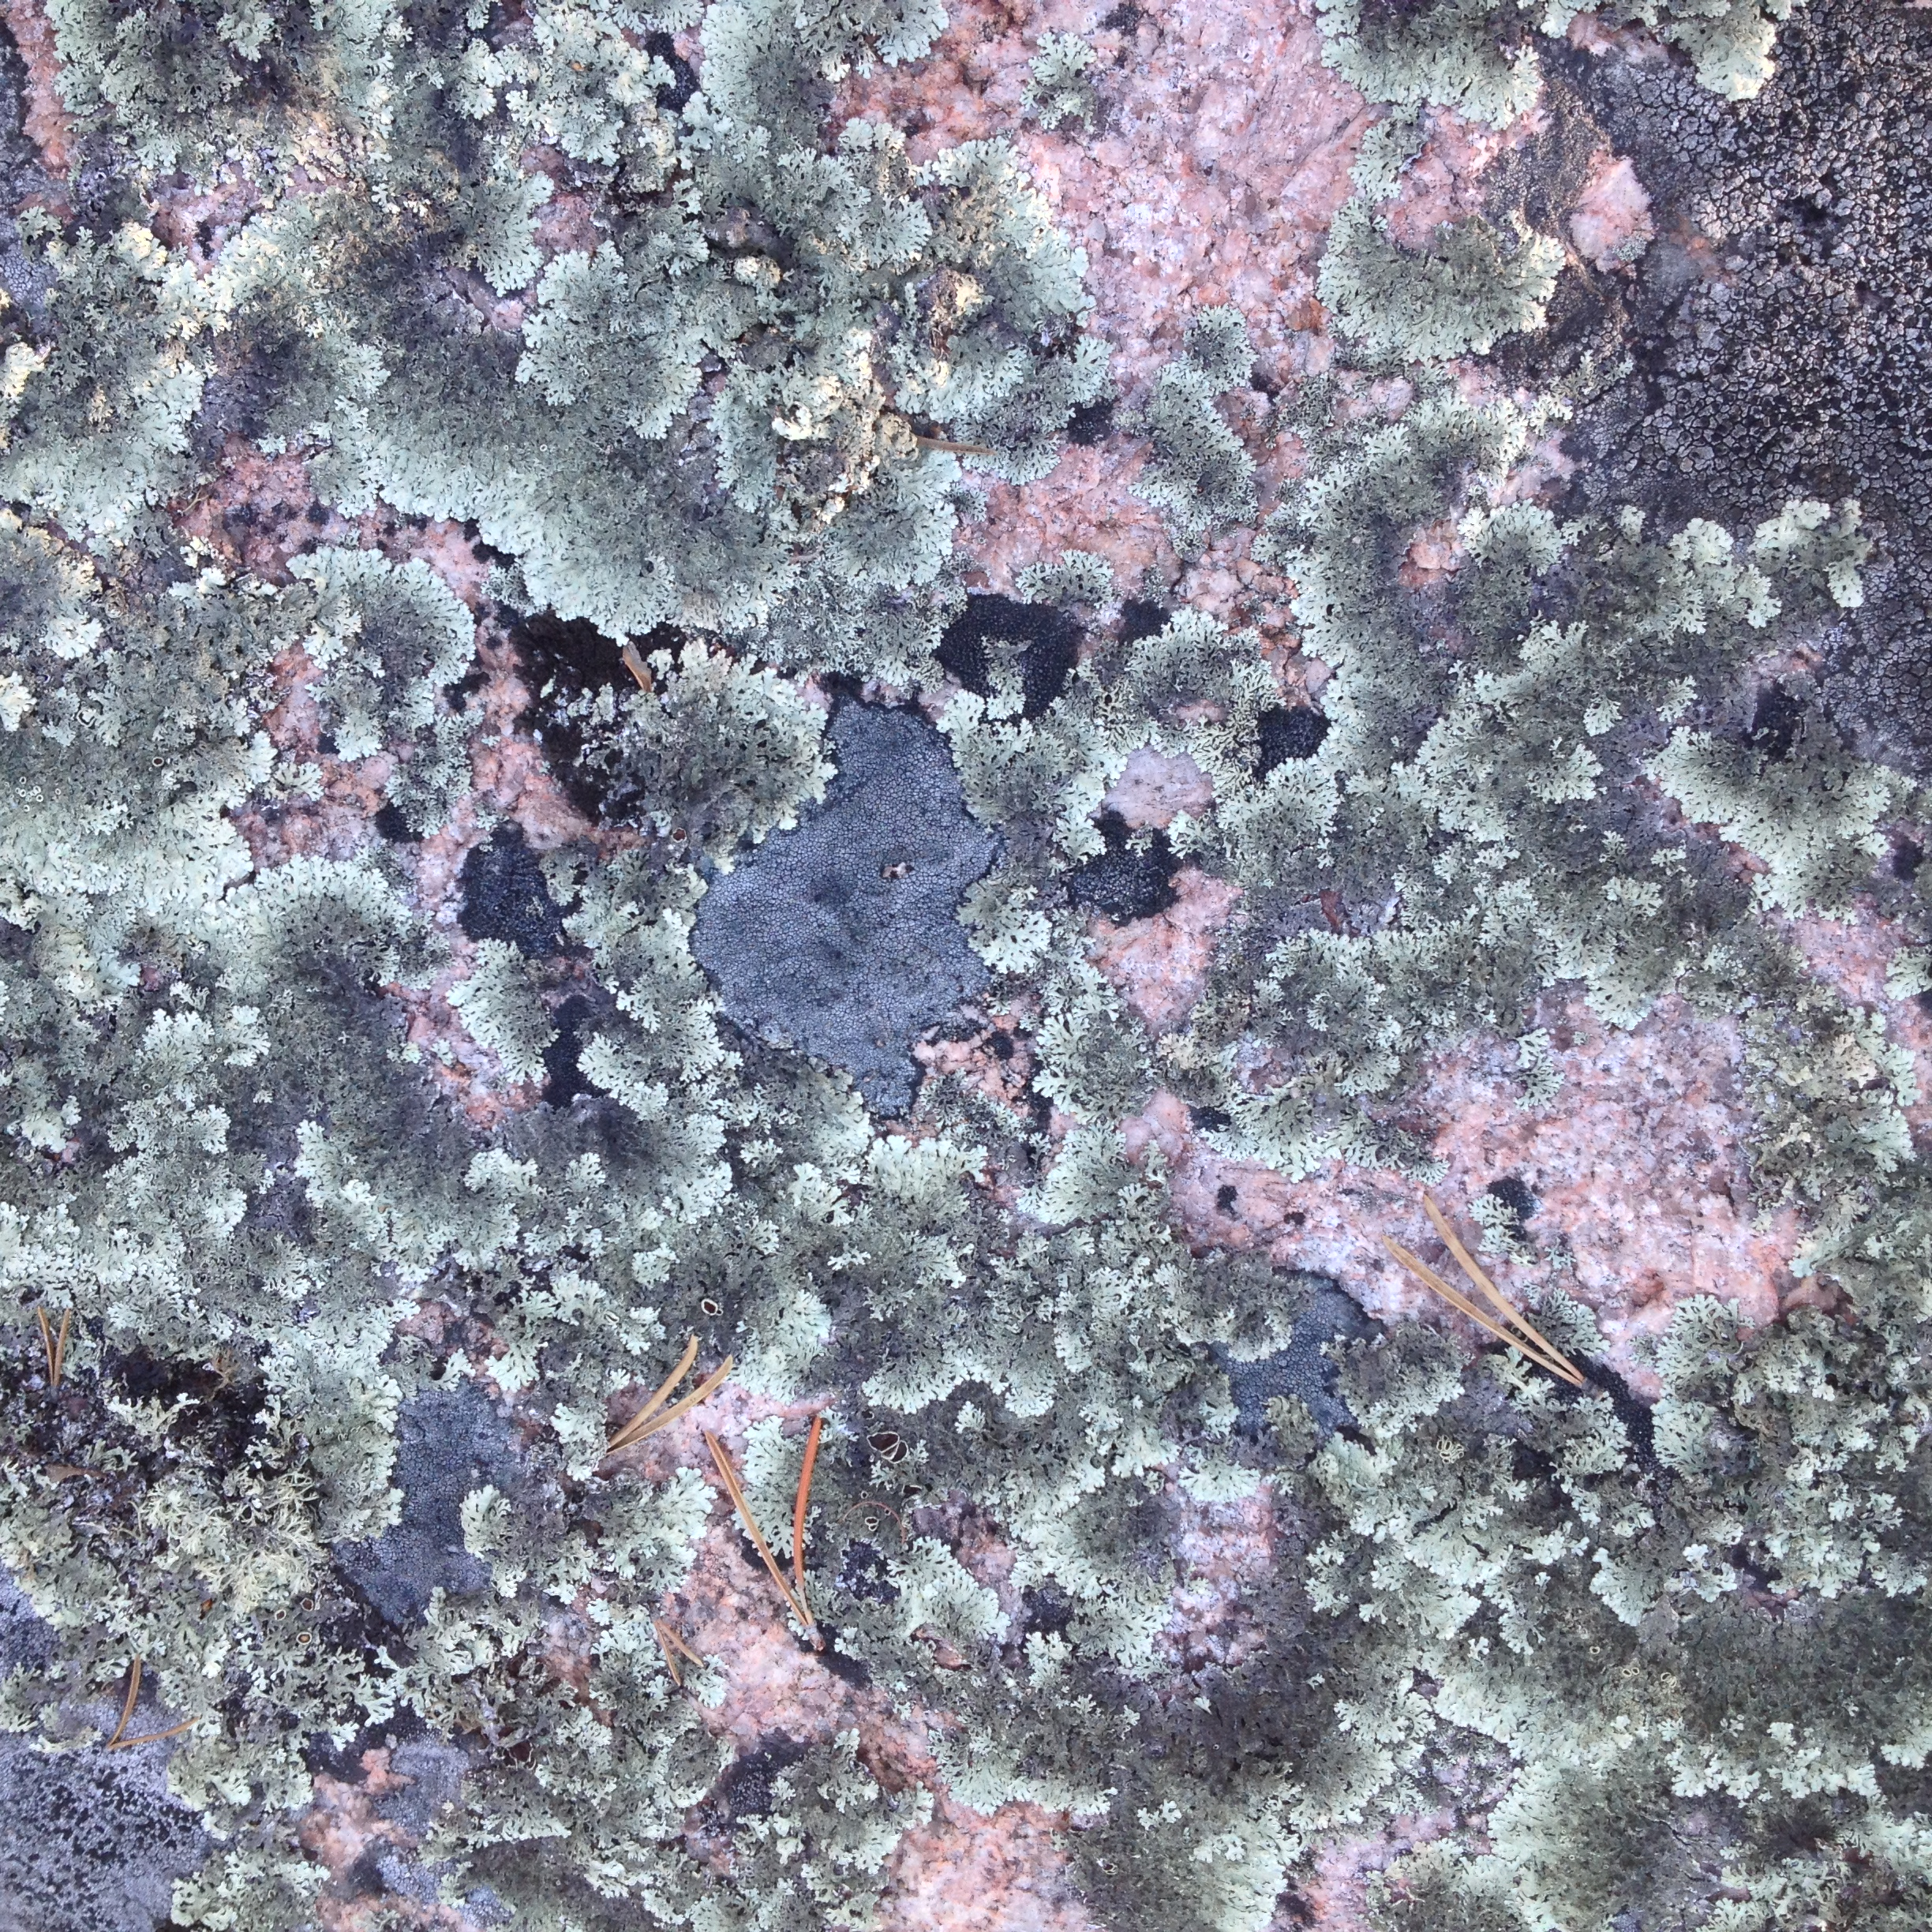 Lichens, Northwest Territories